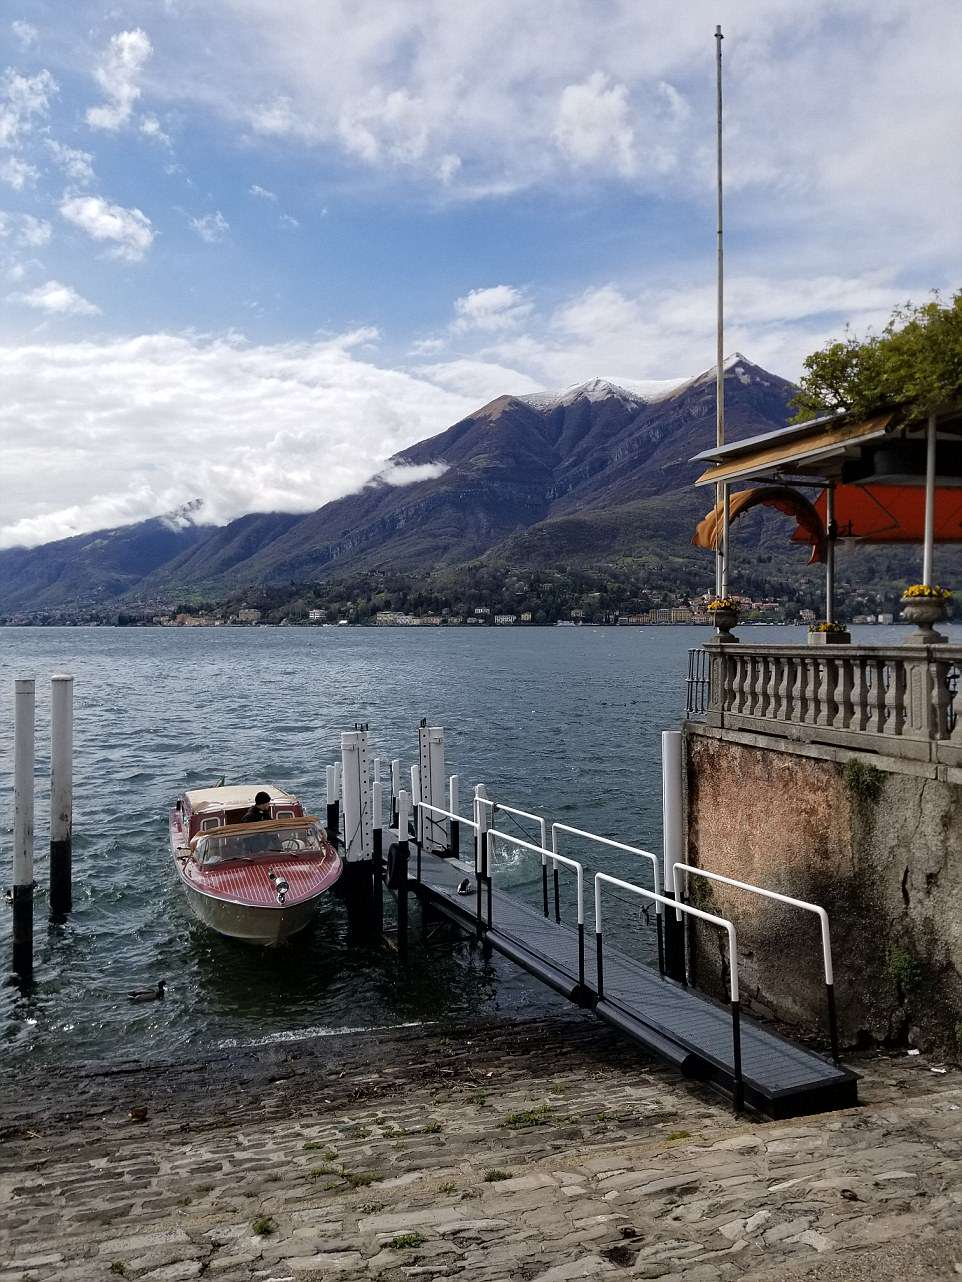 FEMAIL-reveals-live-la-dolce-vita-George-Clooneys-favorite-destination-Lake-Como 4BFC19F600000578-5700925-Travel_in_style_A_visit_to_Lake_Como_isn_t_complete_without_a_po-a-14_1525877366201